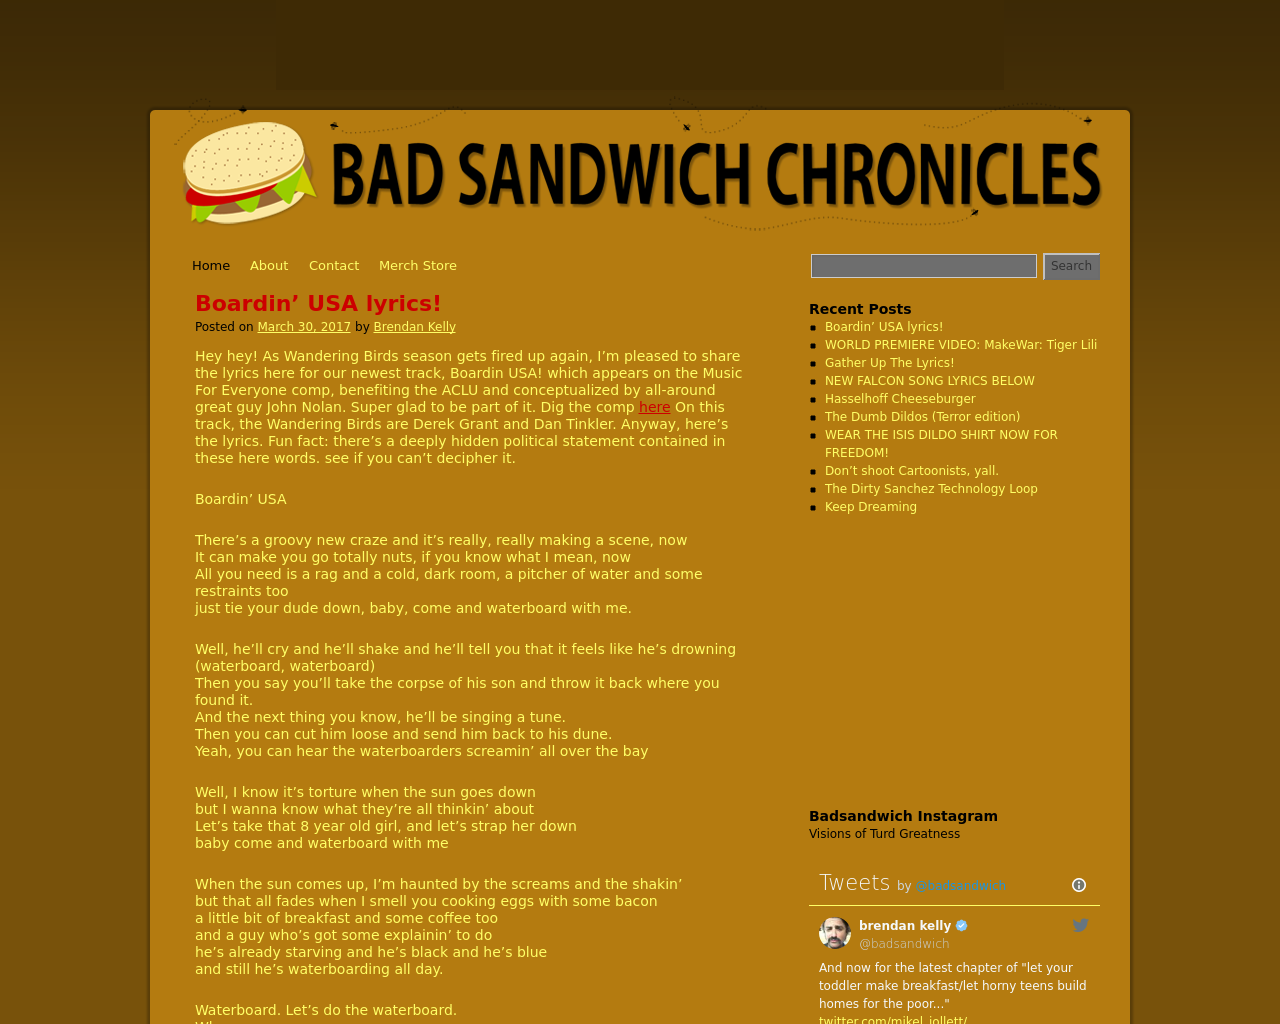 BAD-SANDWICH-CHRONICLES-Advertising-Reviews-Pricing